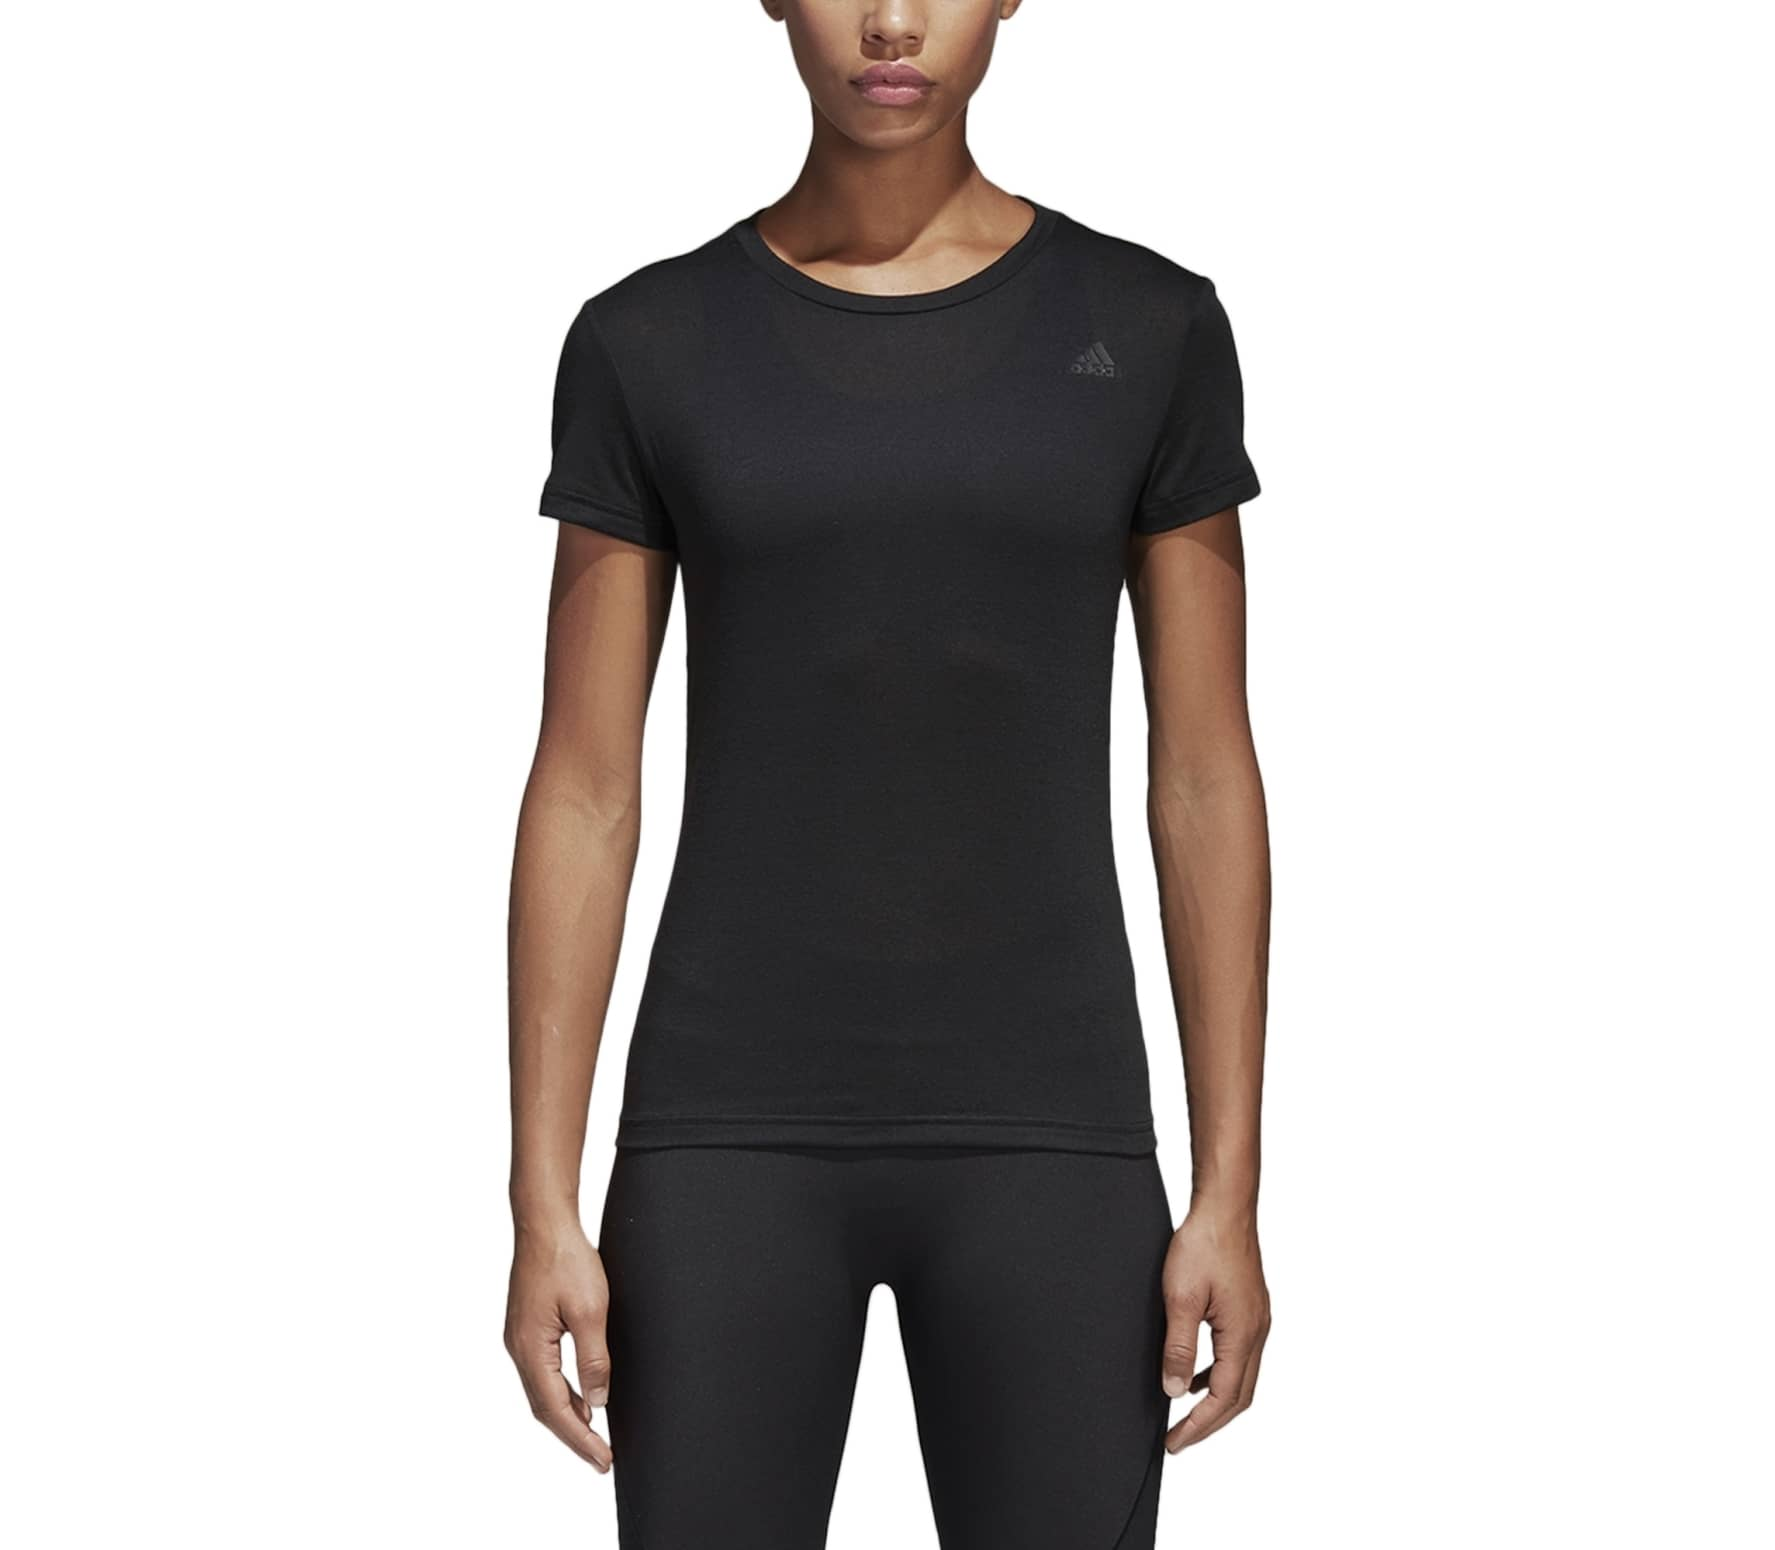 Adidas FreeLift Prime Damen Trainingsshirt (schwarz)